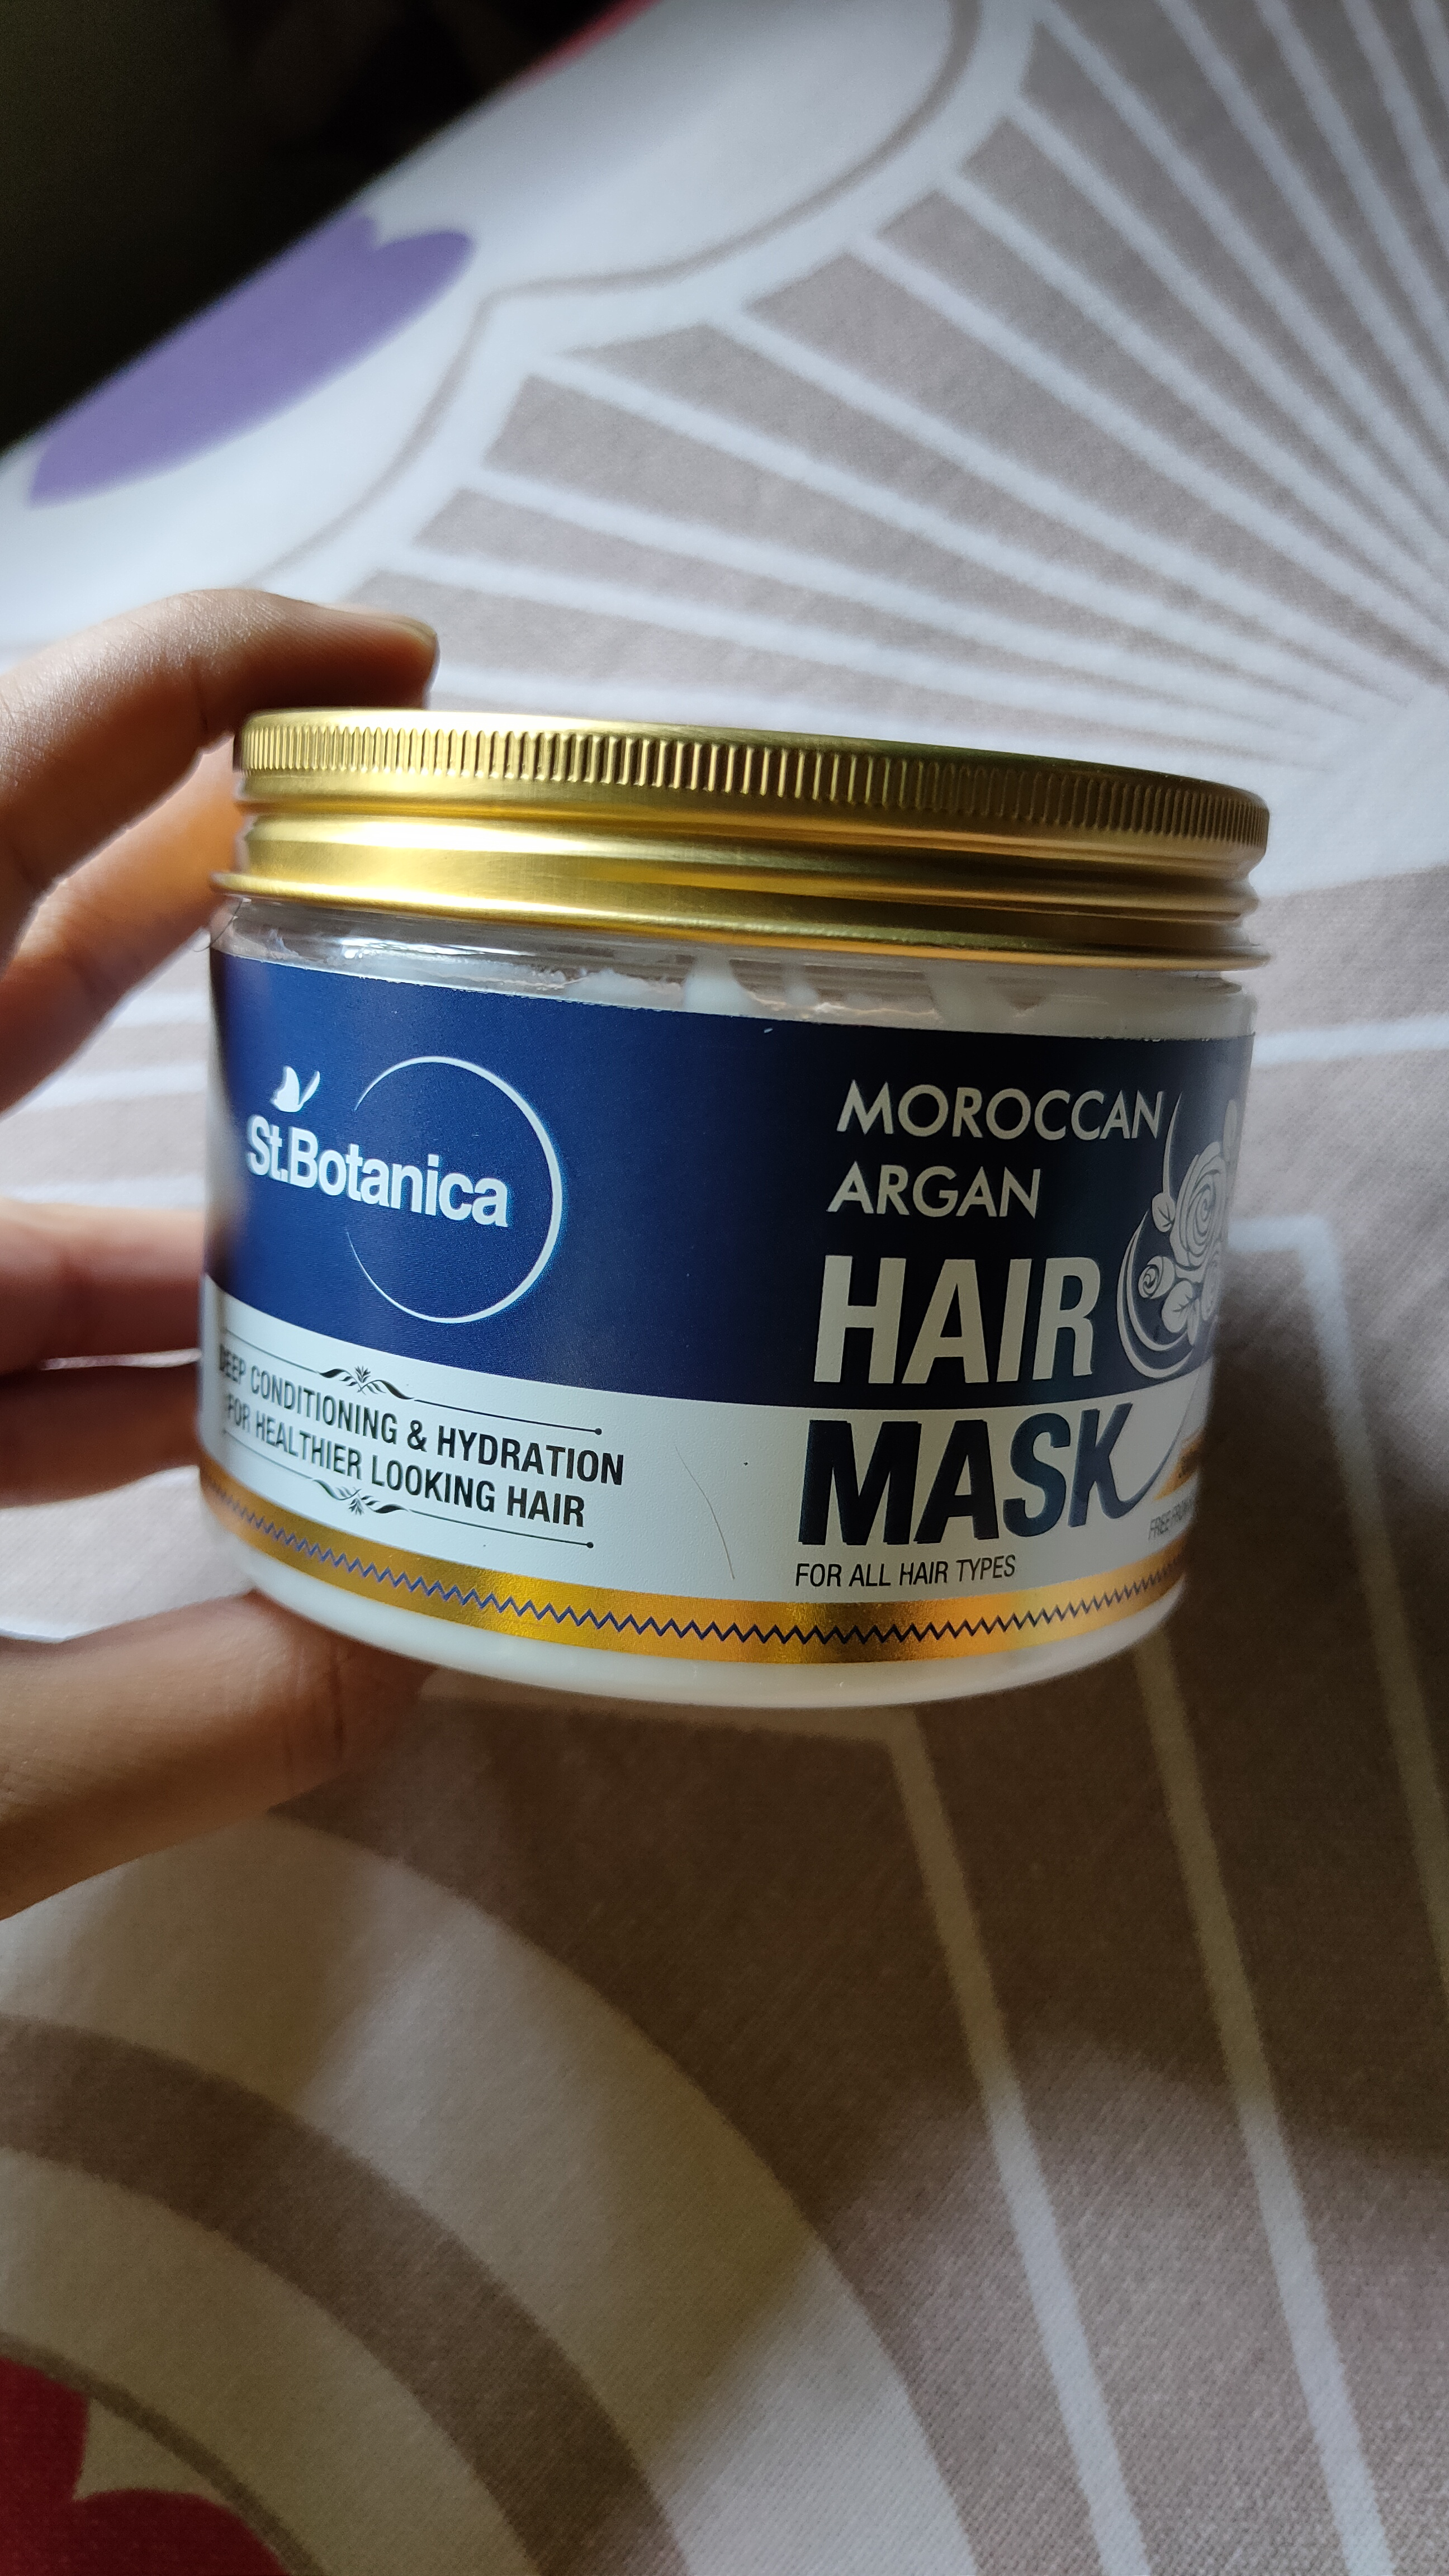 St.Botanica Moroccan Argan Hair Mask-Great Conditioner-By theeyesthatshin-5